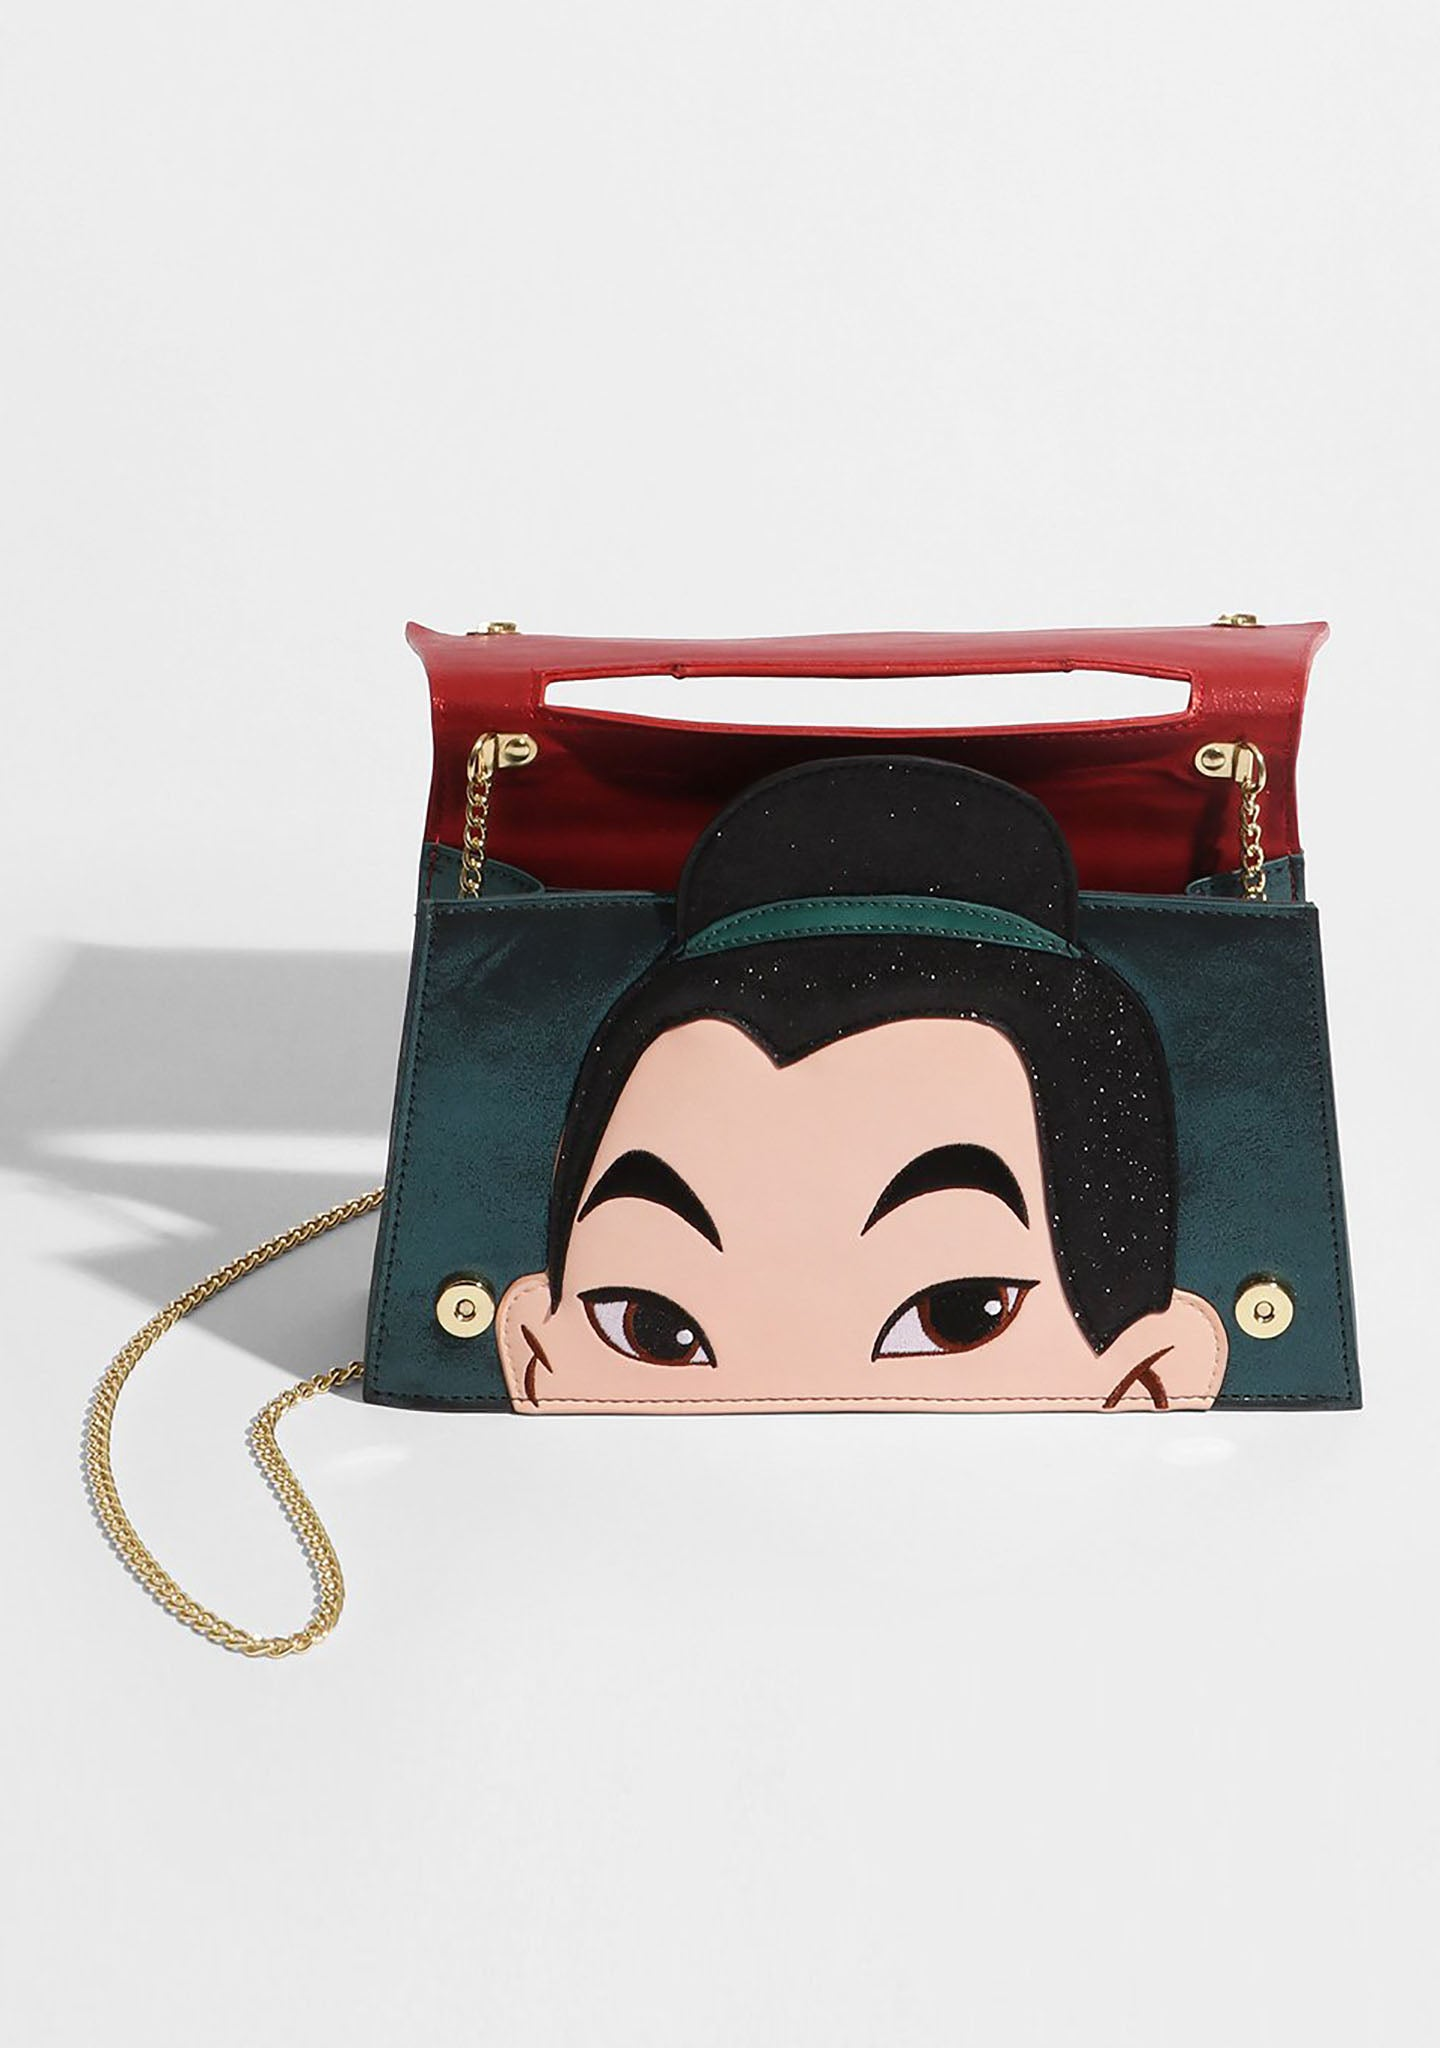 Danielle Nicole X Disney Mulan Crossbody Bag